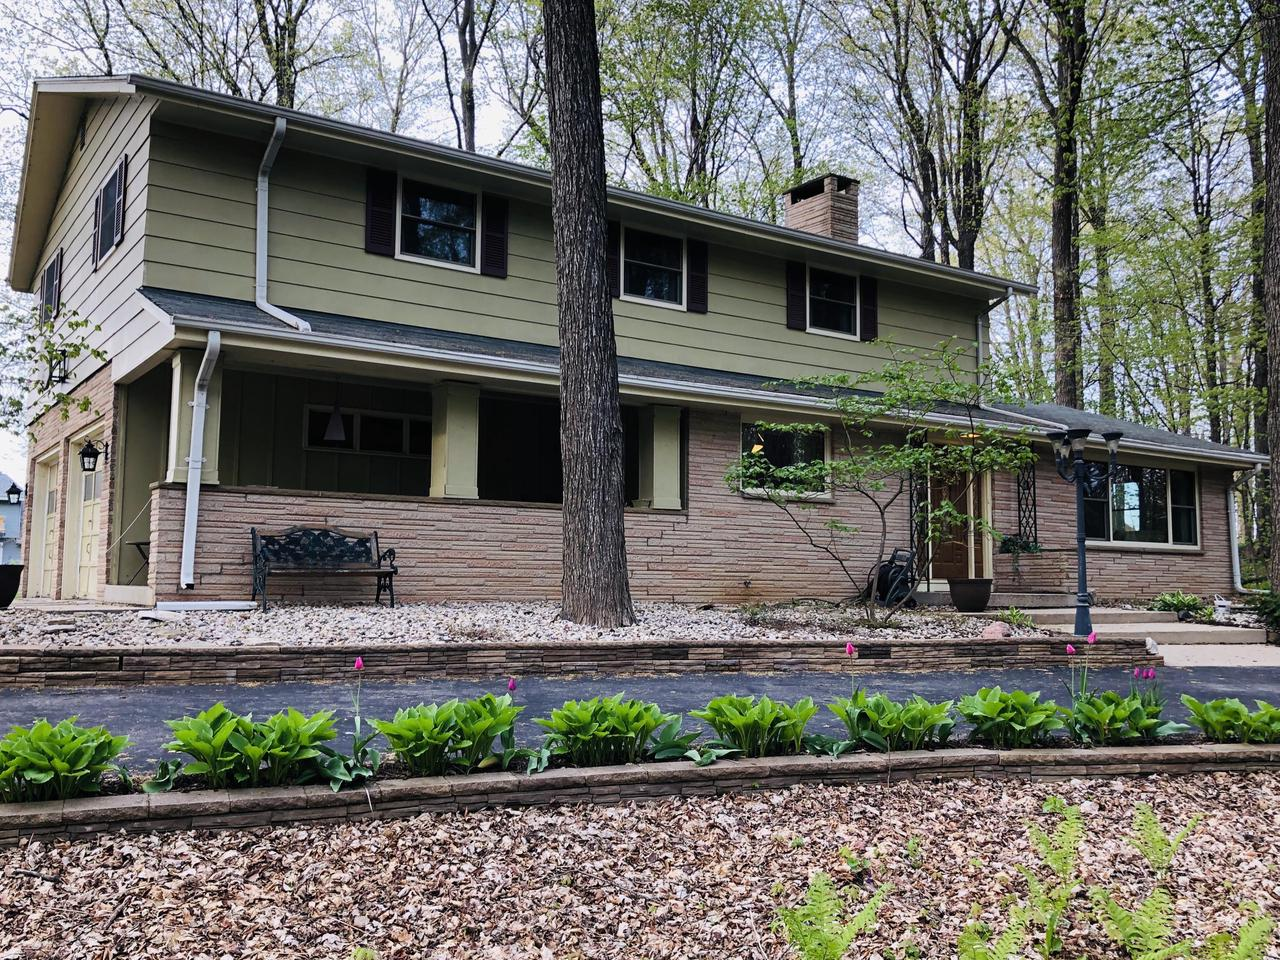 Don't miss your chance to own this retreat, tucked in the wooded wonderland that is Fox Lane!  This beautiful property offers a beautiful yard, sprawling rooms, and it's close to EVERYTHING.  This home is perfect for a growing family, with large bedrooms, 1st floor laundry, and plenty of room to entertain in the finished basement or large backyard. This is an AS IS sale, and price is reflective of work that yet needs to be completed.